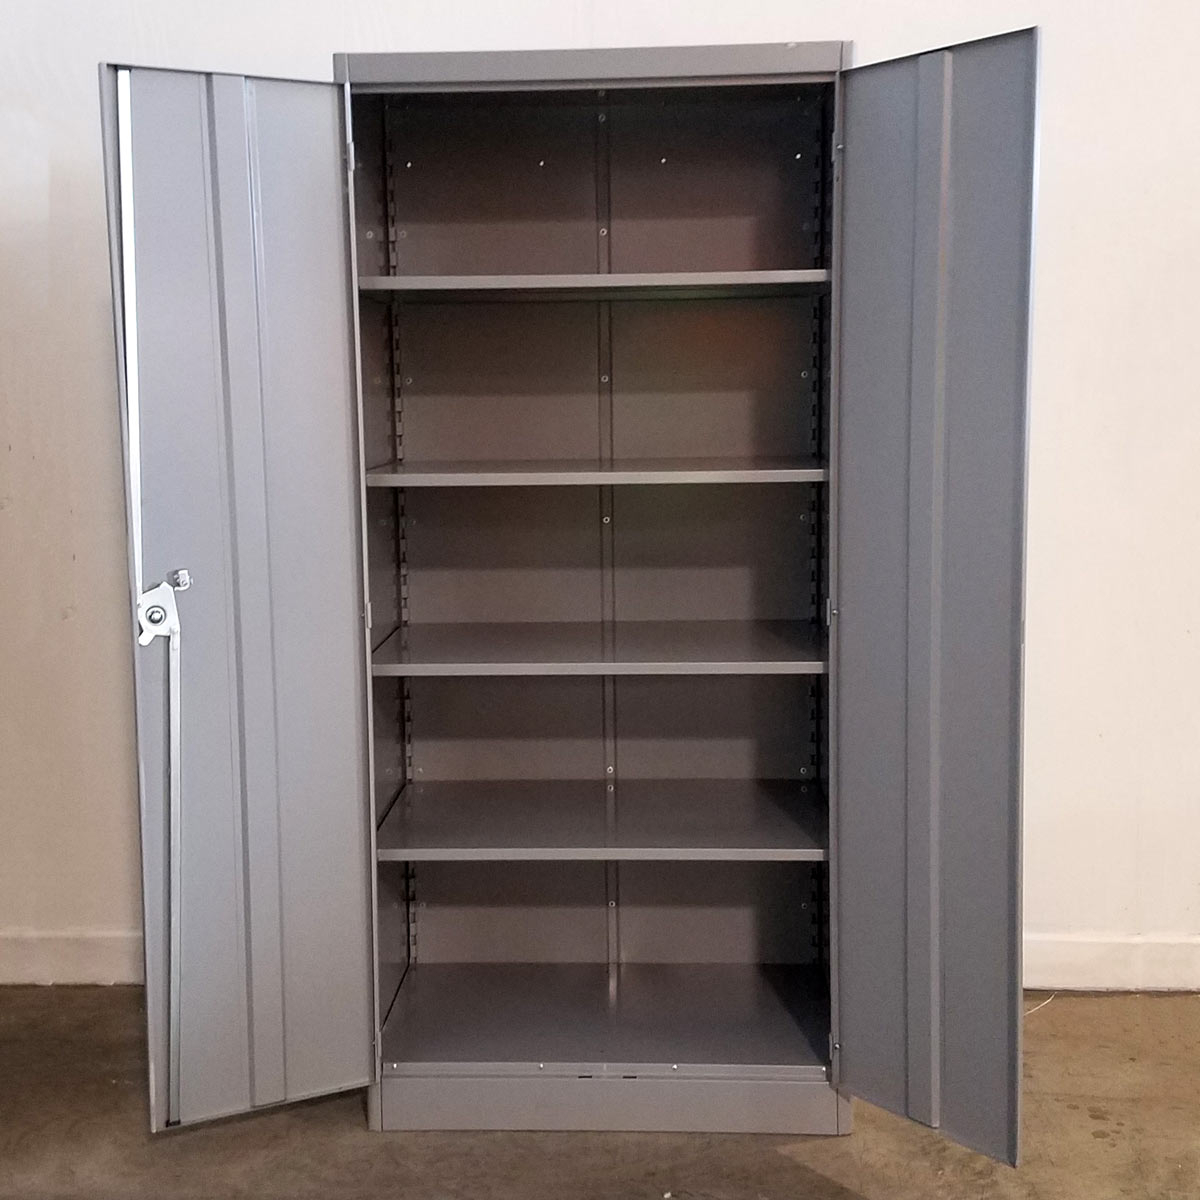 Most Recent Cabinets – Bakersfield Rack And Shelving With Regard To Fresno Standard Bookcases (View 16 of 20)